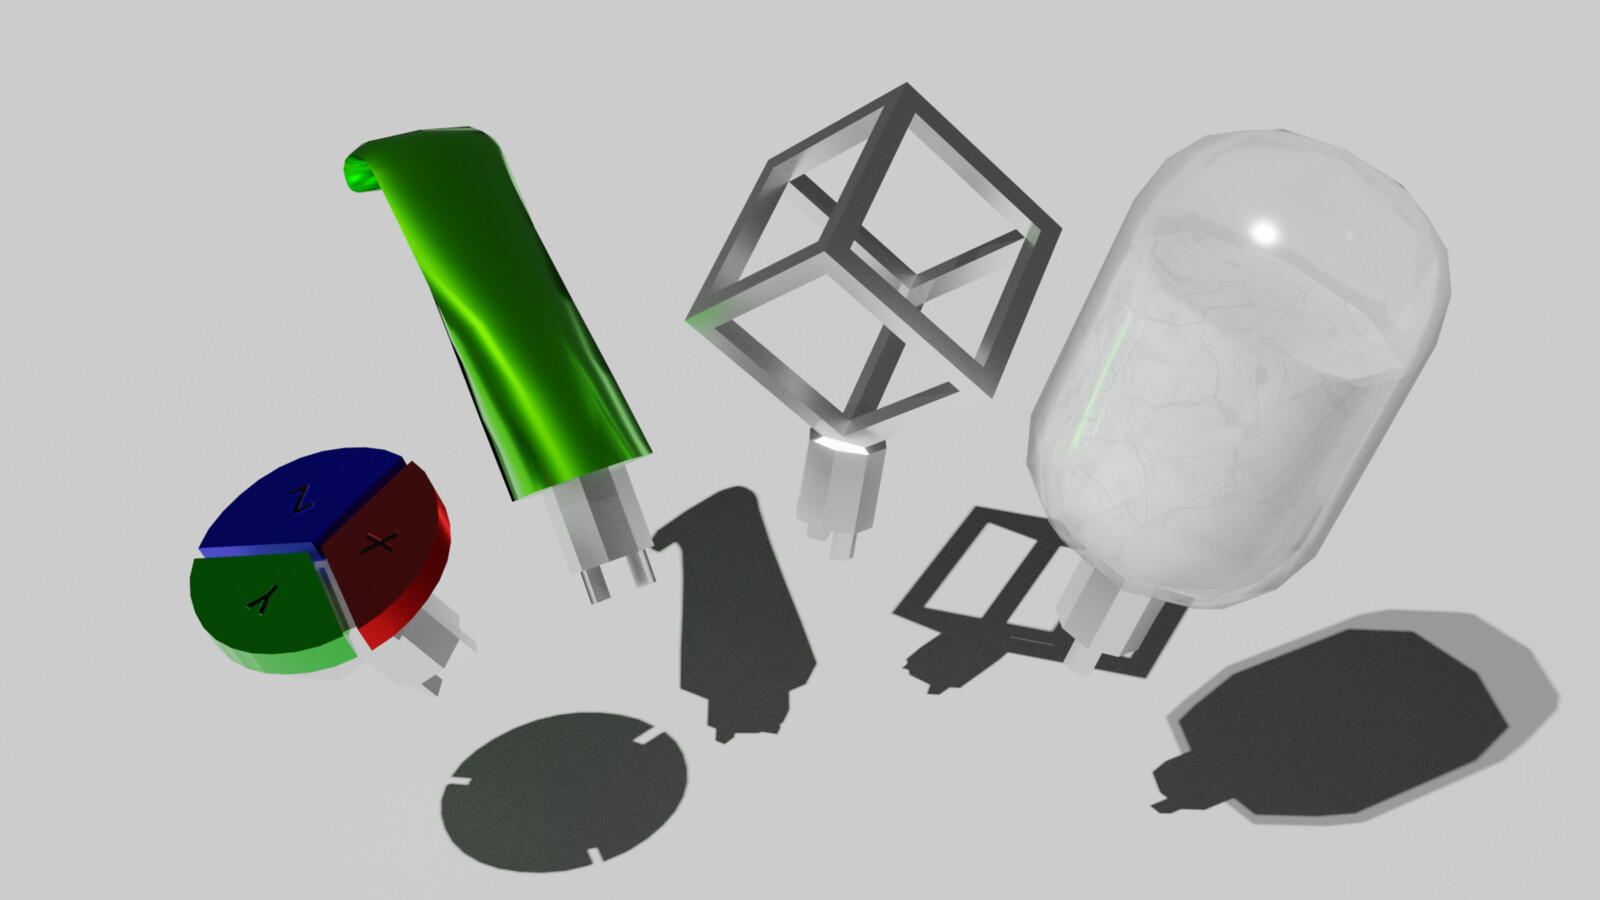 A render of the plug items used in the game